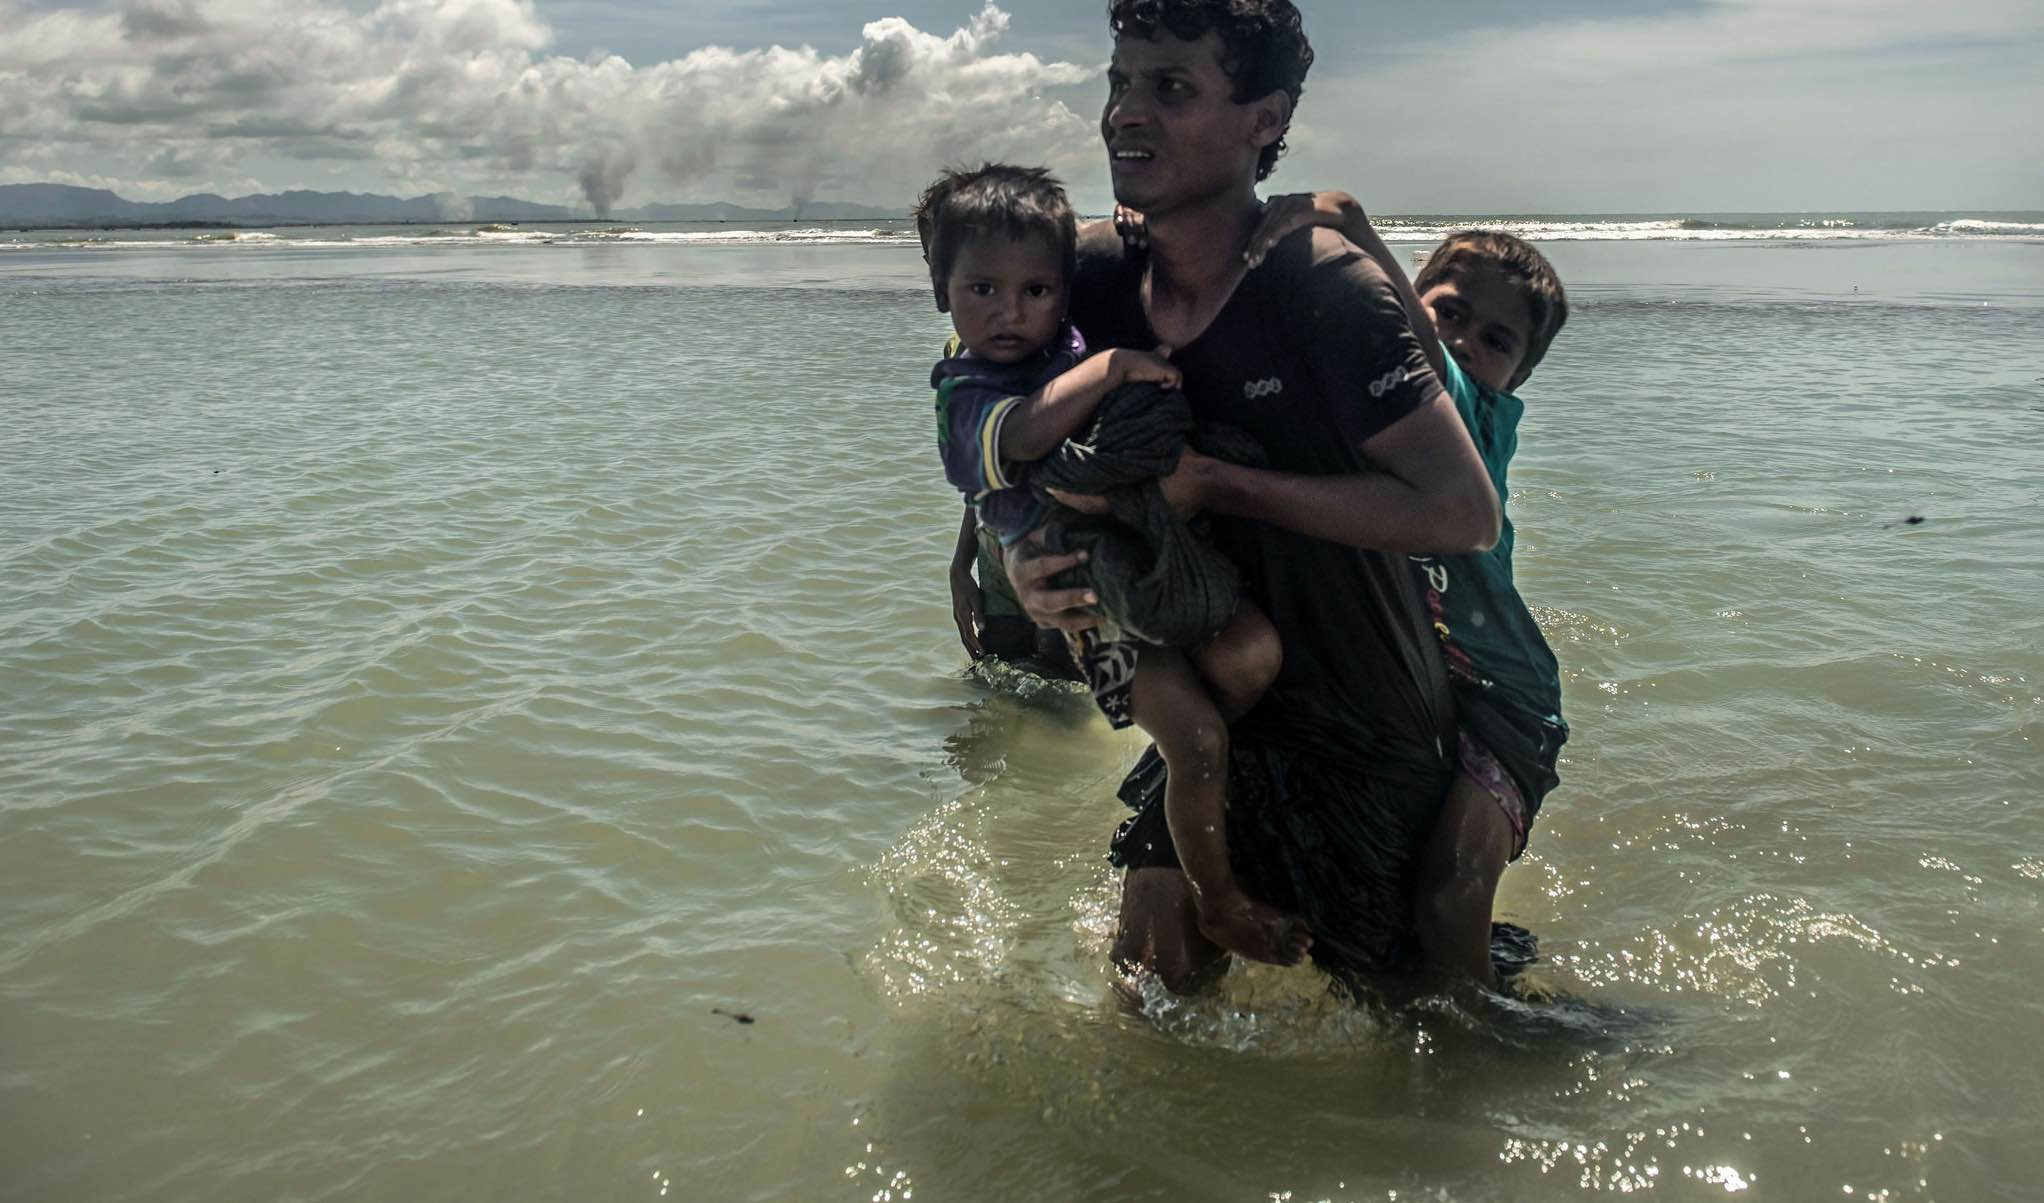 Rohingya refugees in Bangladesh in September 2017 (Photo: CAFOD Photo Library/Flickr)